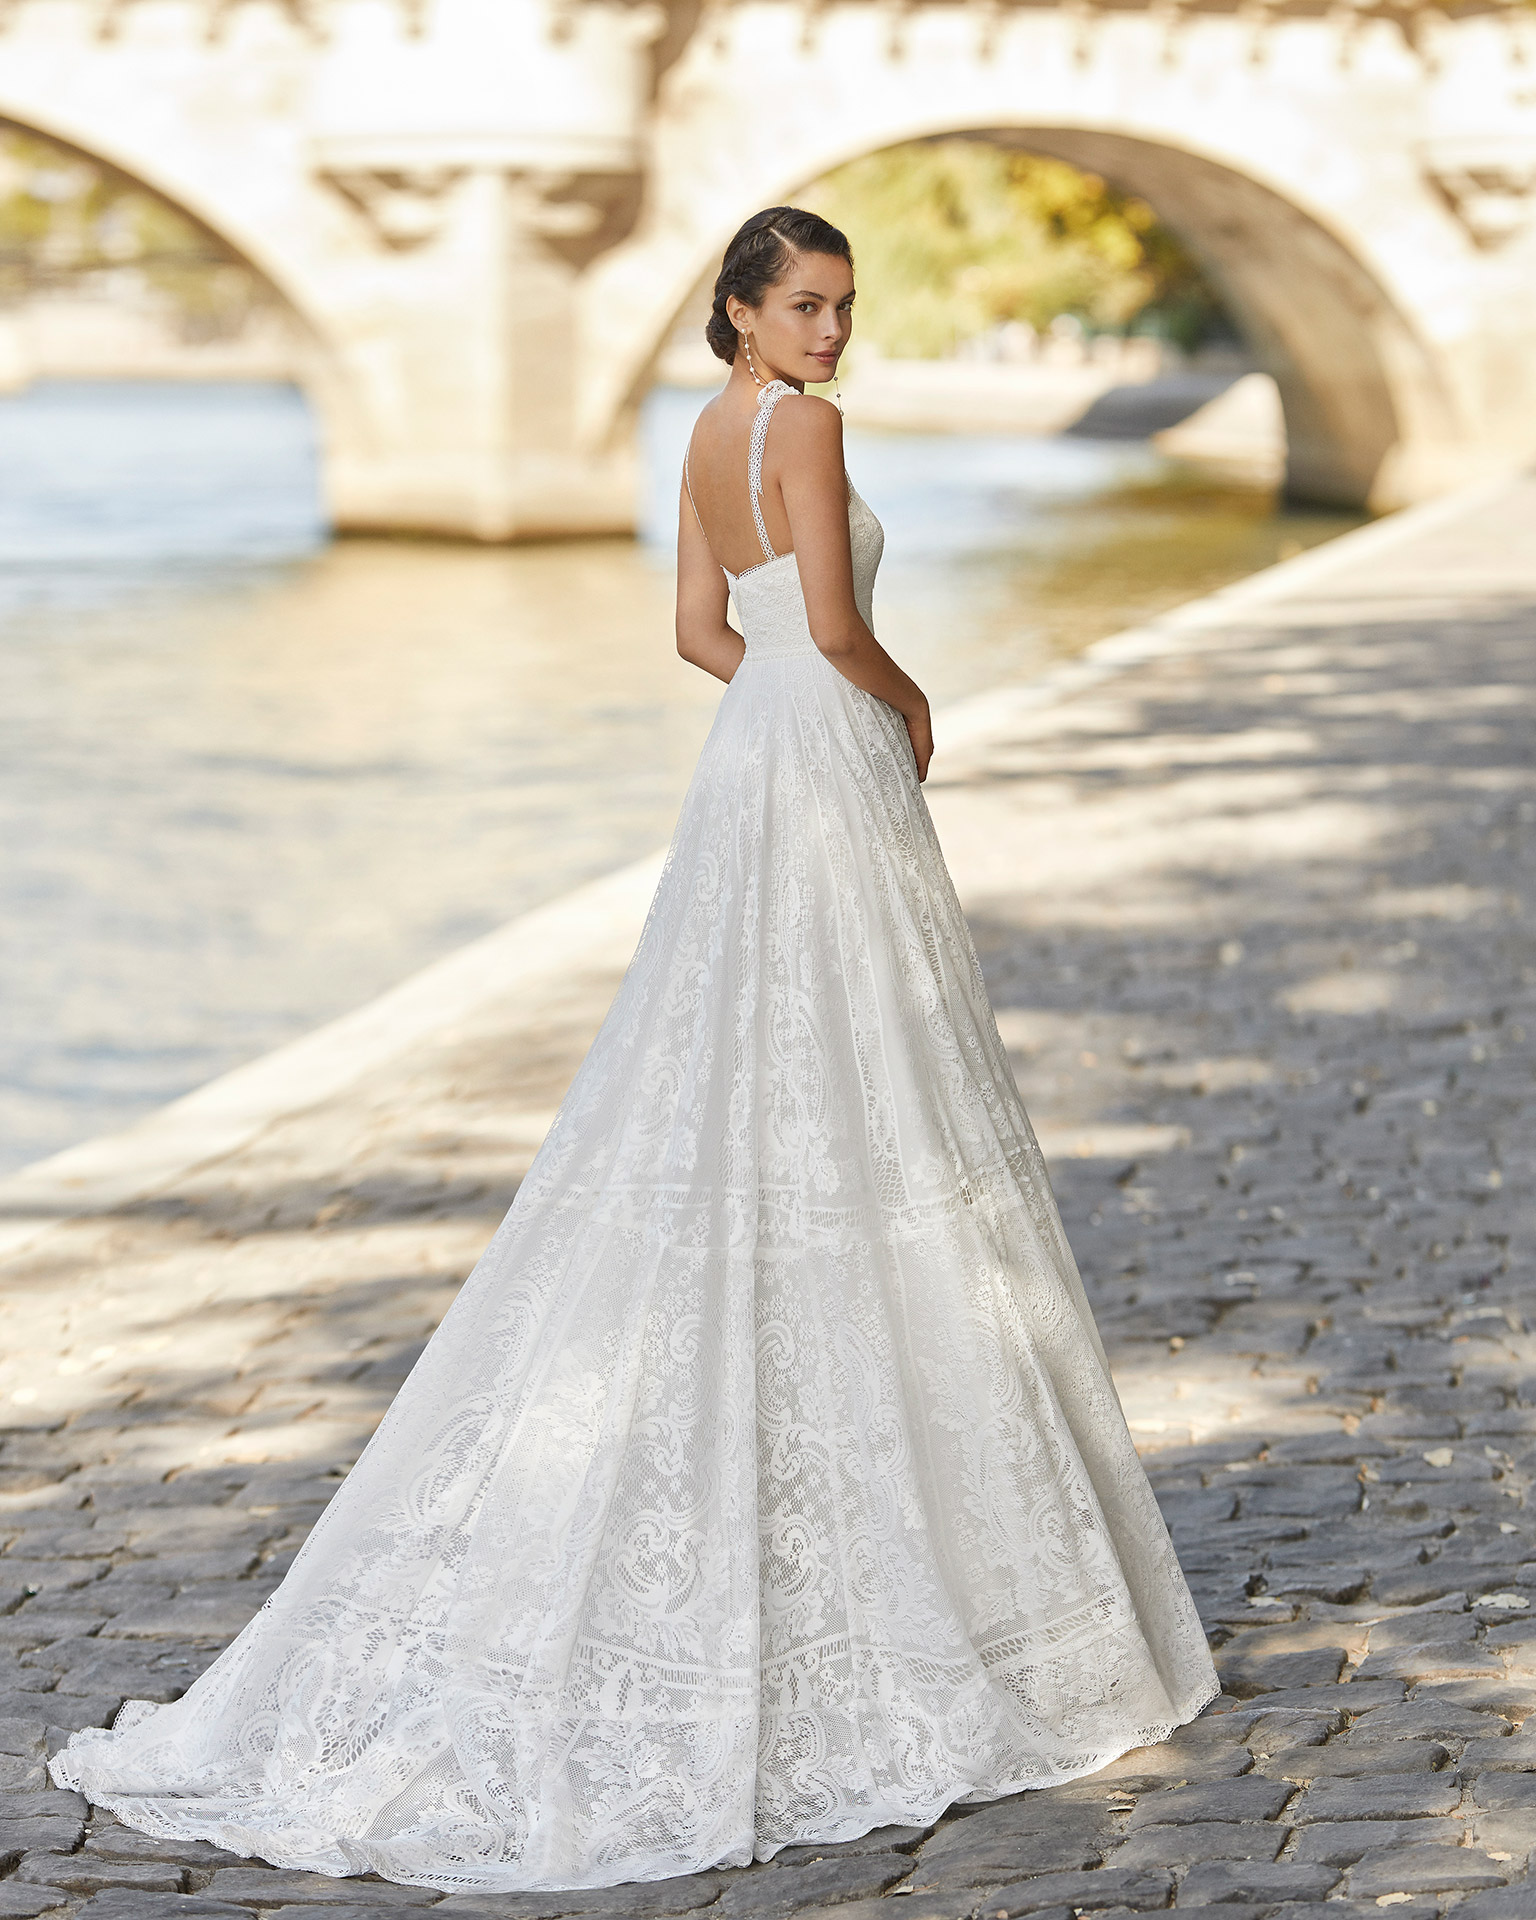 Lace wedding dress. Strapless neckline with shoulder straps and square back. 2021 ALMANOVIA Collection.